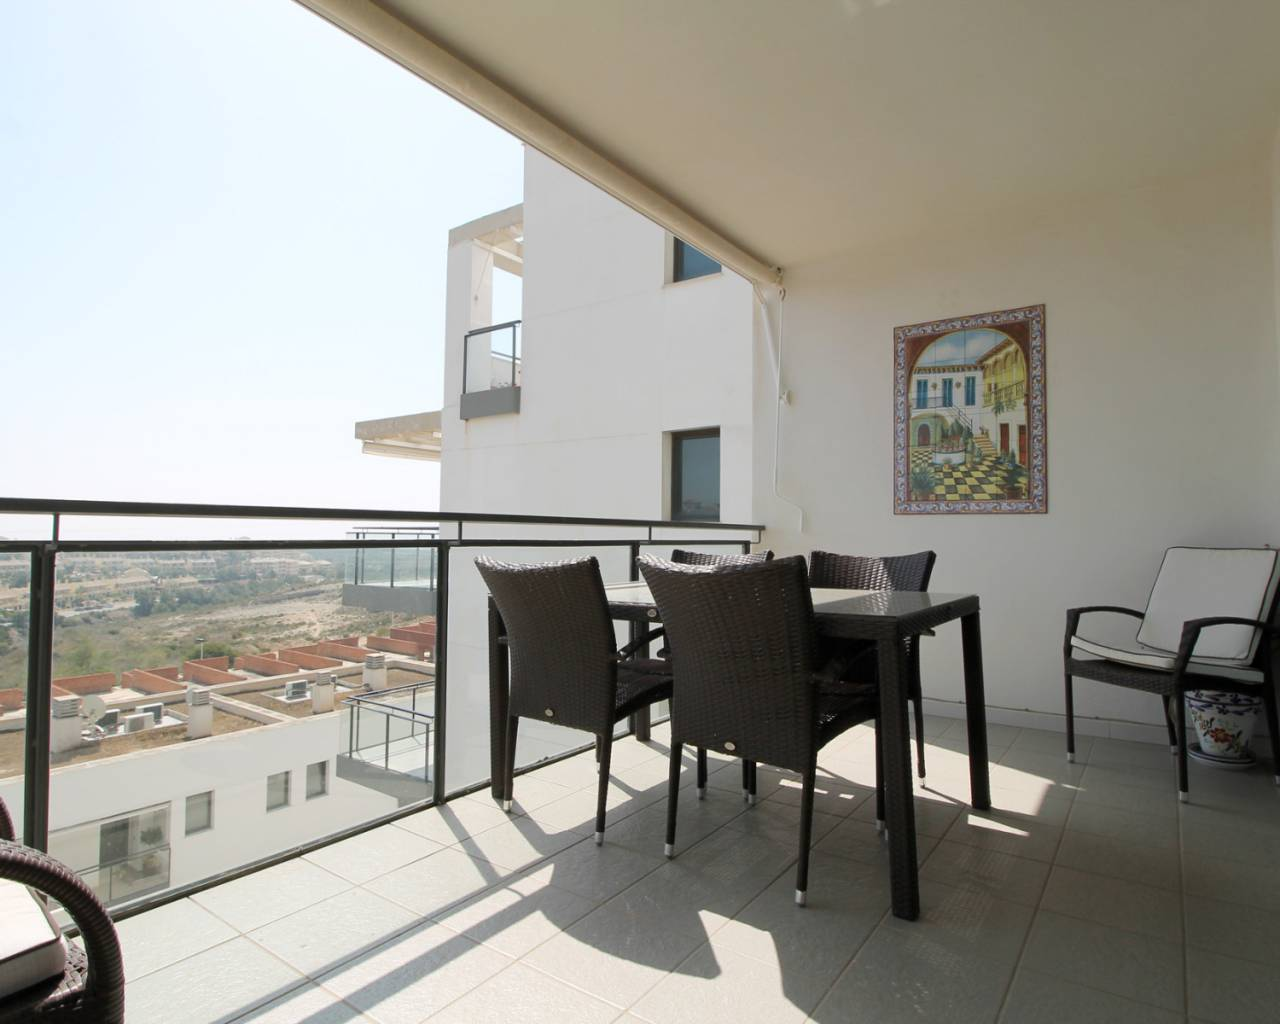 Revente - Appartement - Orihuela Costa - Campoamor Golf